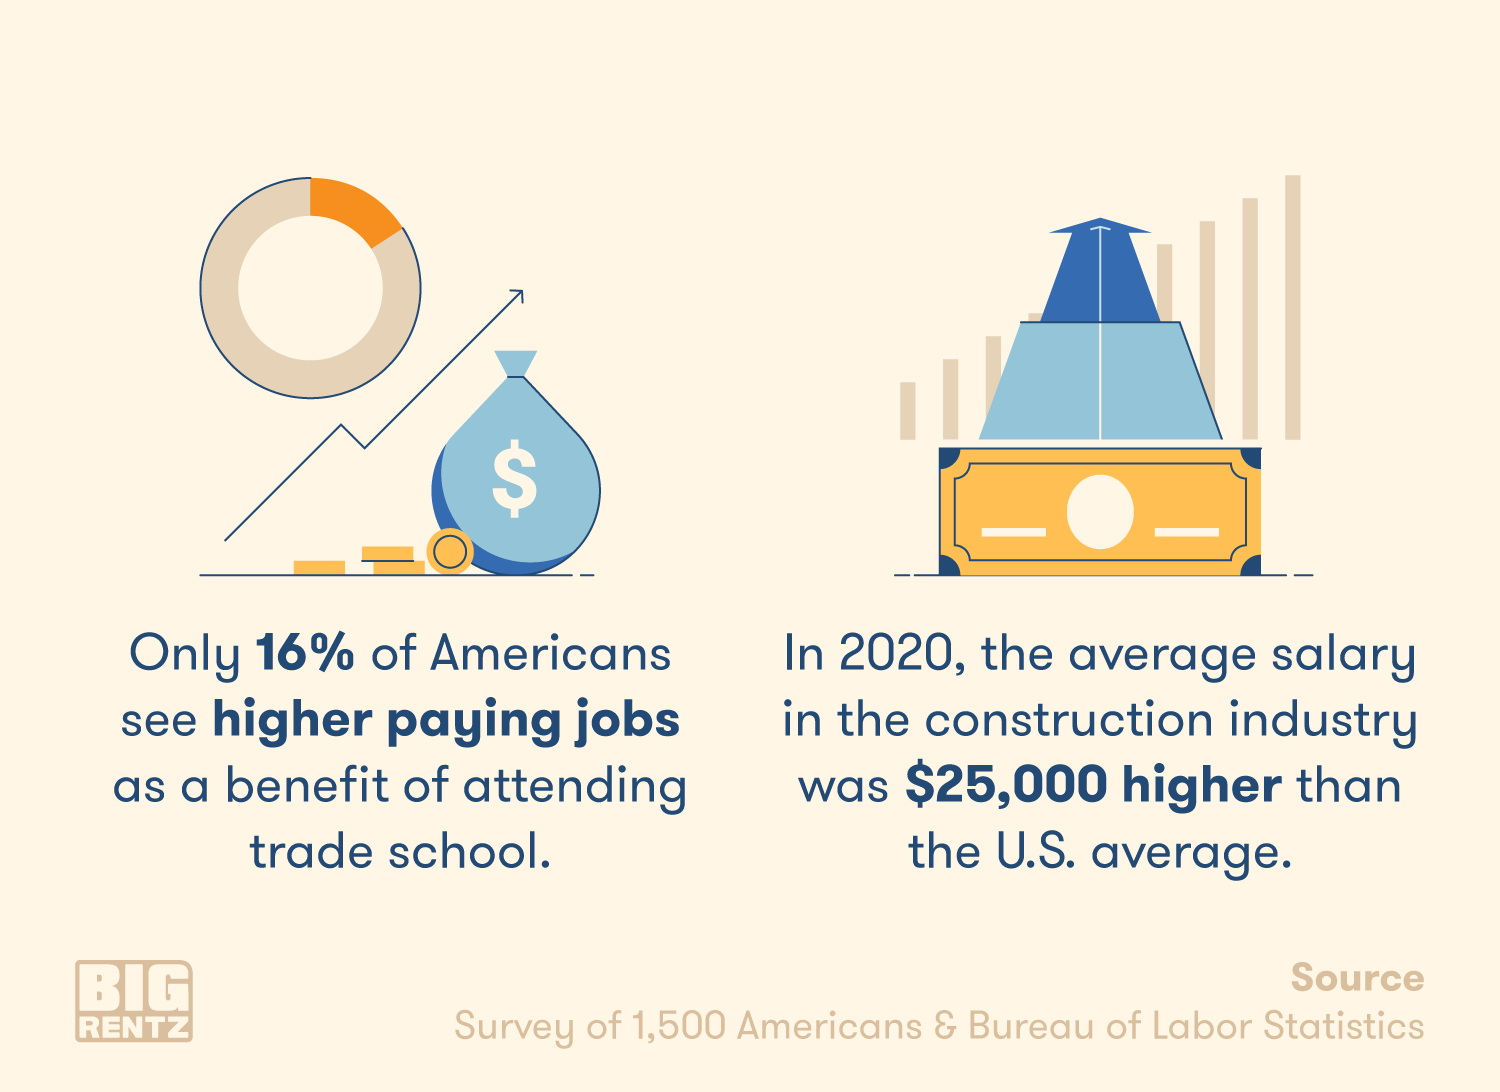 Although most don't see trade school jobs as lucrative, the average construction worker salary is 25,000 dollars higher than the U.S. average.